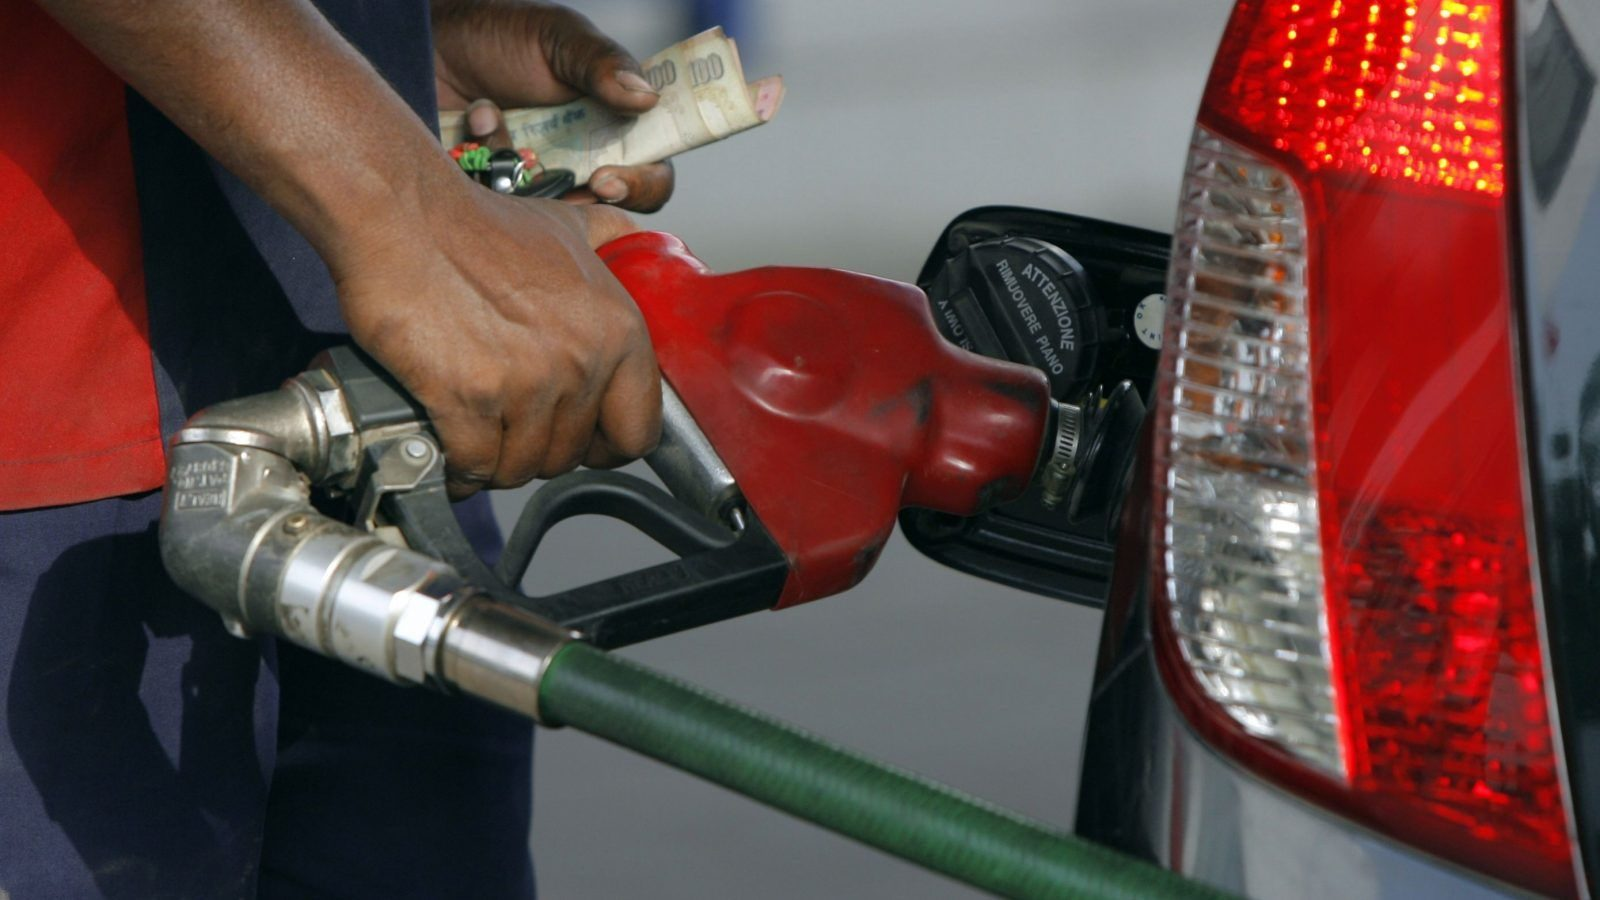 An employee fills a vehicle with petrol at a fuel station in New Delhi June 25, 2010. India's government on Friday freed up state-subsidised petrol prices and hiked other fuels as high global oil prices and pressure to trim the budget deficit outweighed concerns about the political impact of the measures. REUTERS/Mukesh Gupta (INDIA - Tags: ENERGY BUSINESS POLITICS) - GM1E66P1LTX01